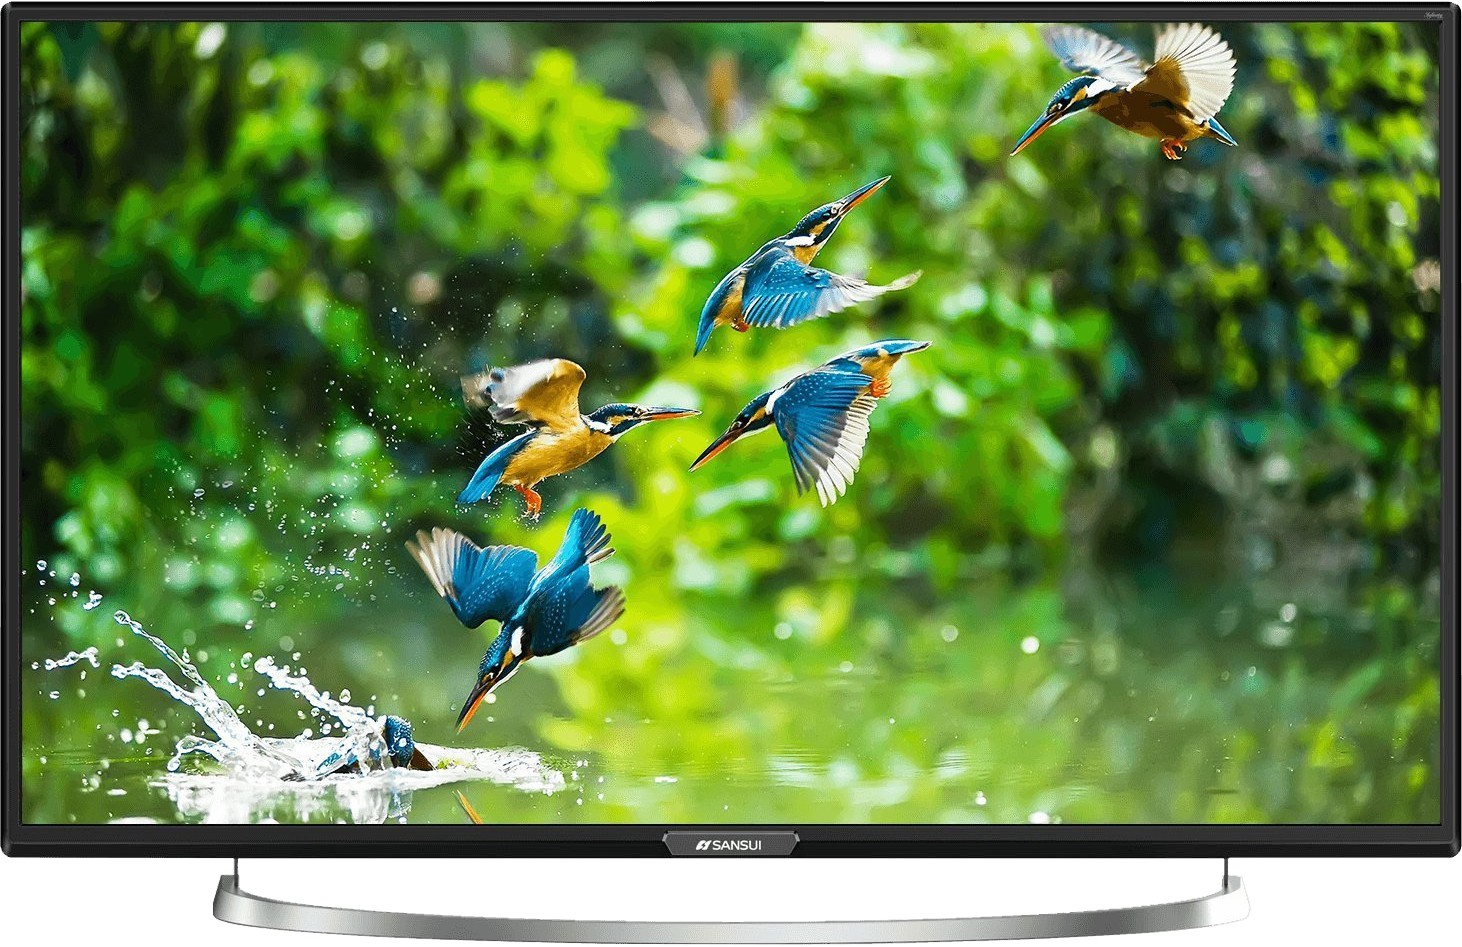 SANSUI SKQ48FH 48 Inches Full HD LED TV